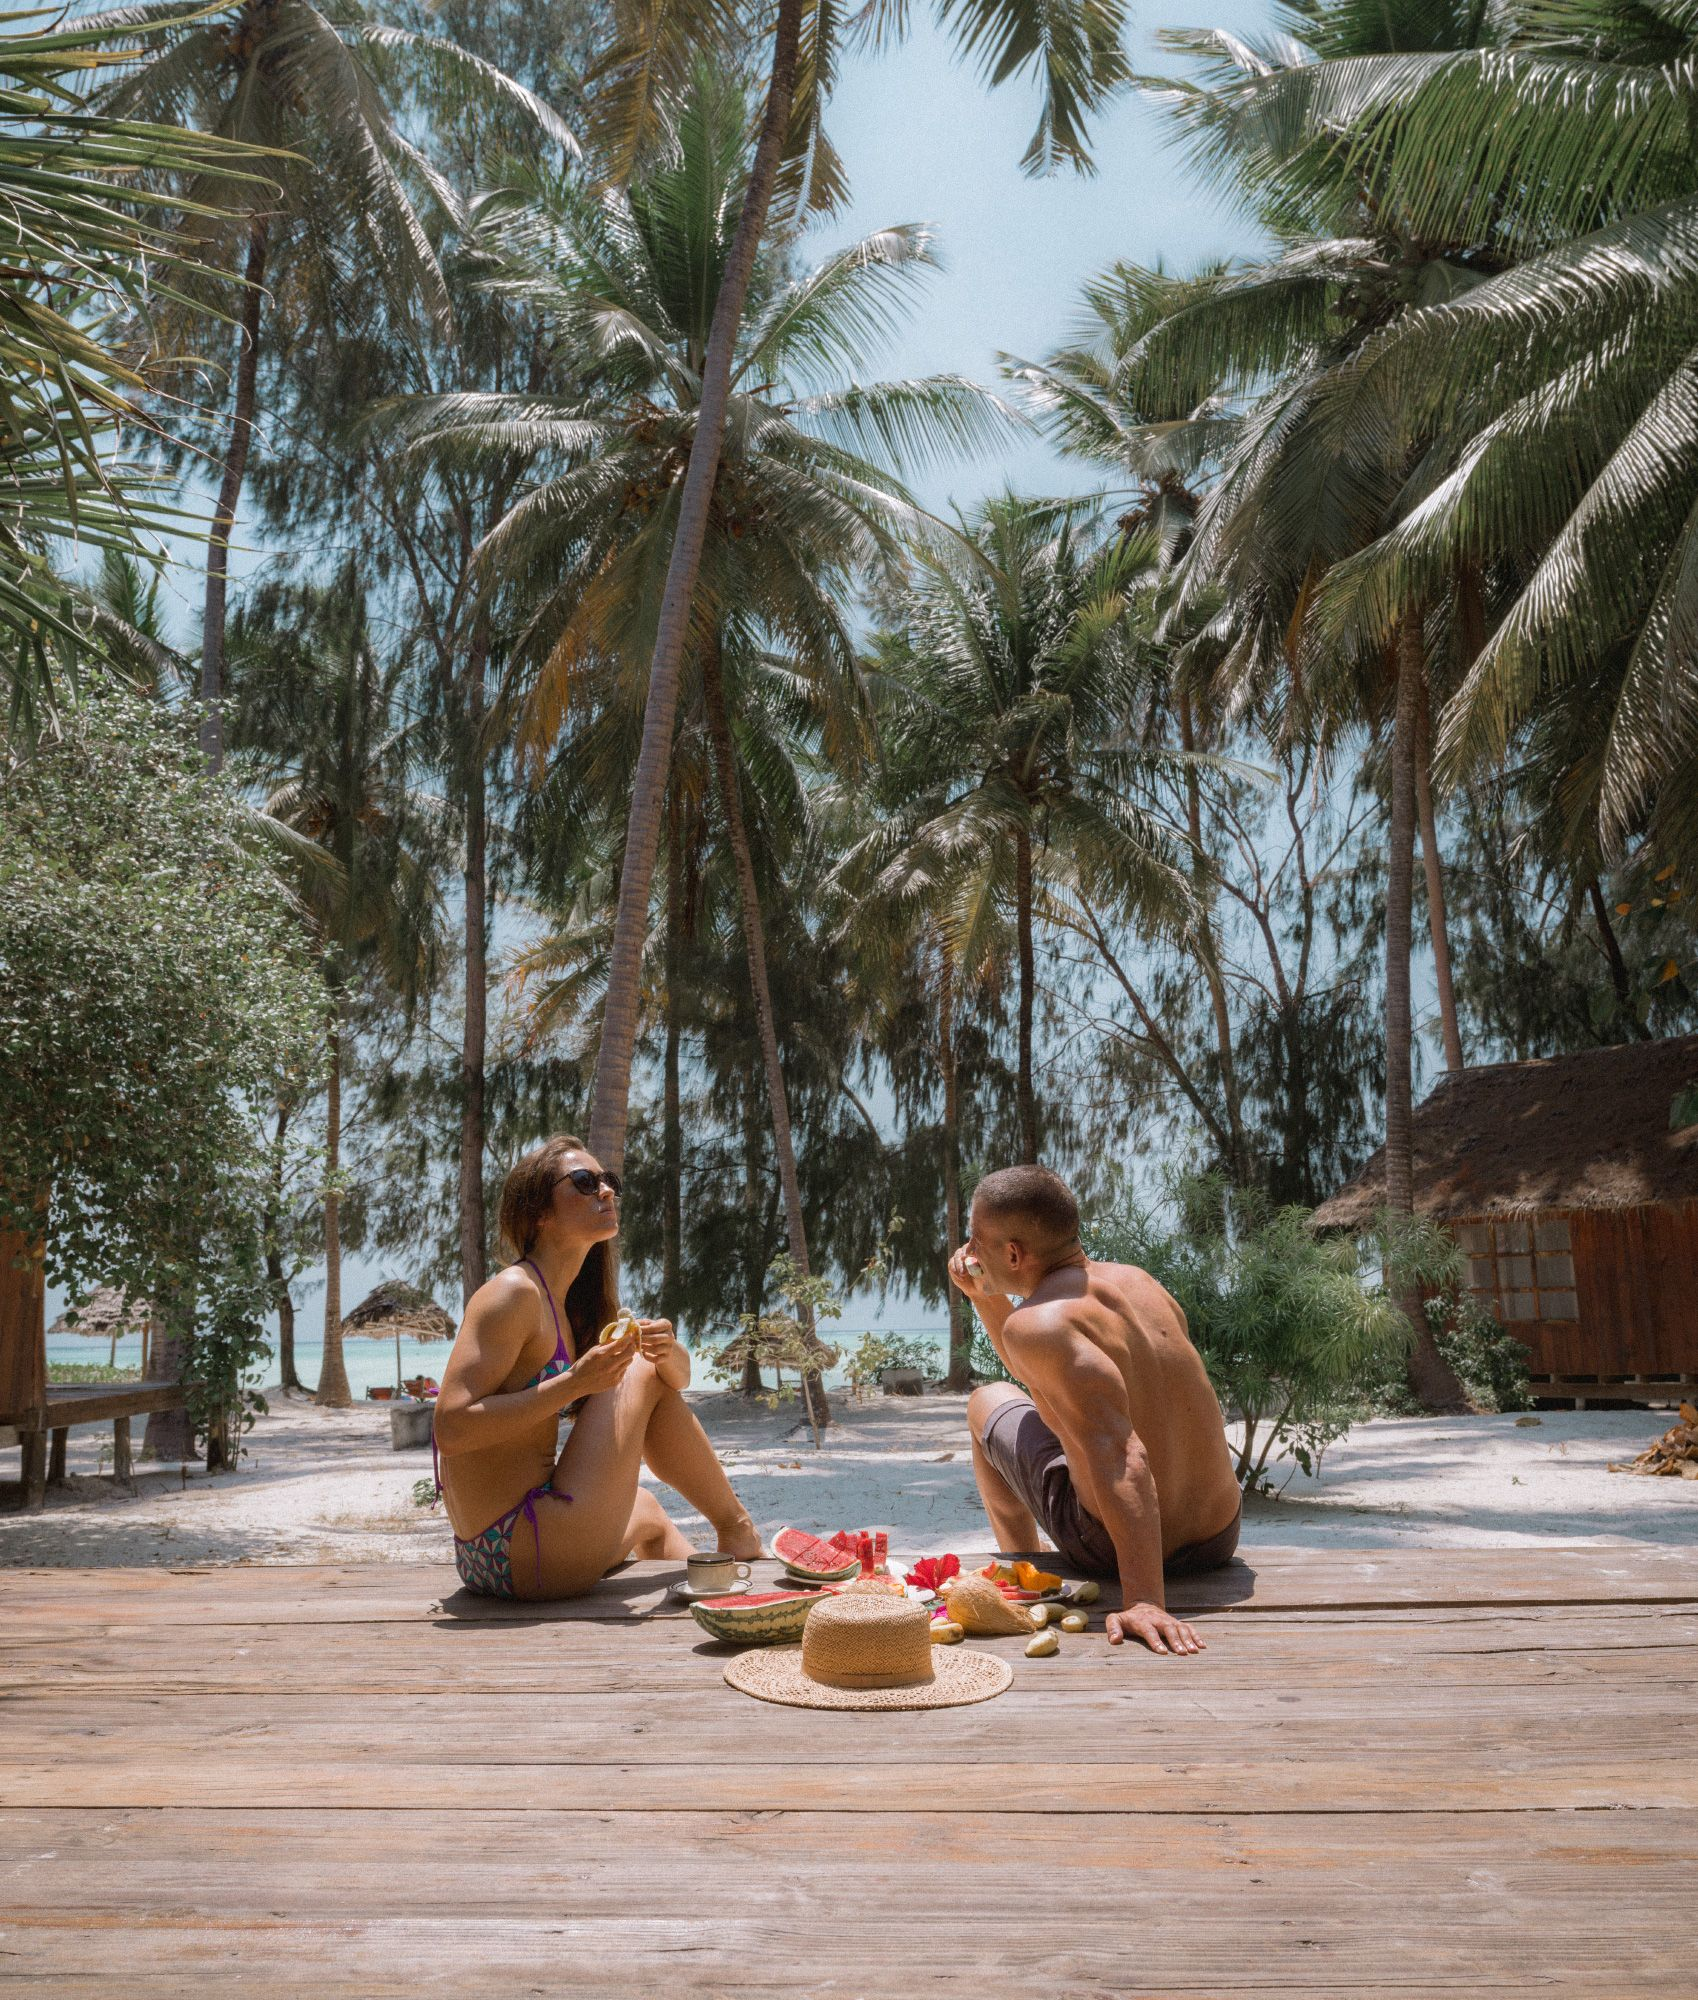 How not to love the tropics when you can have a breakfast like that